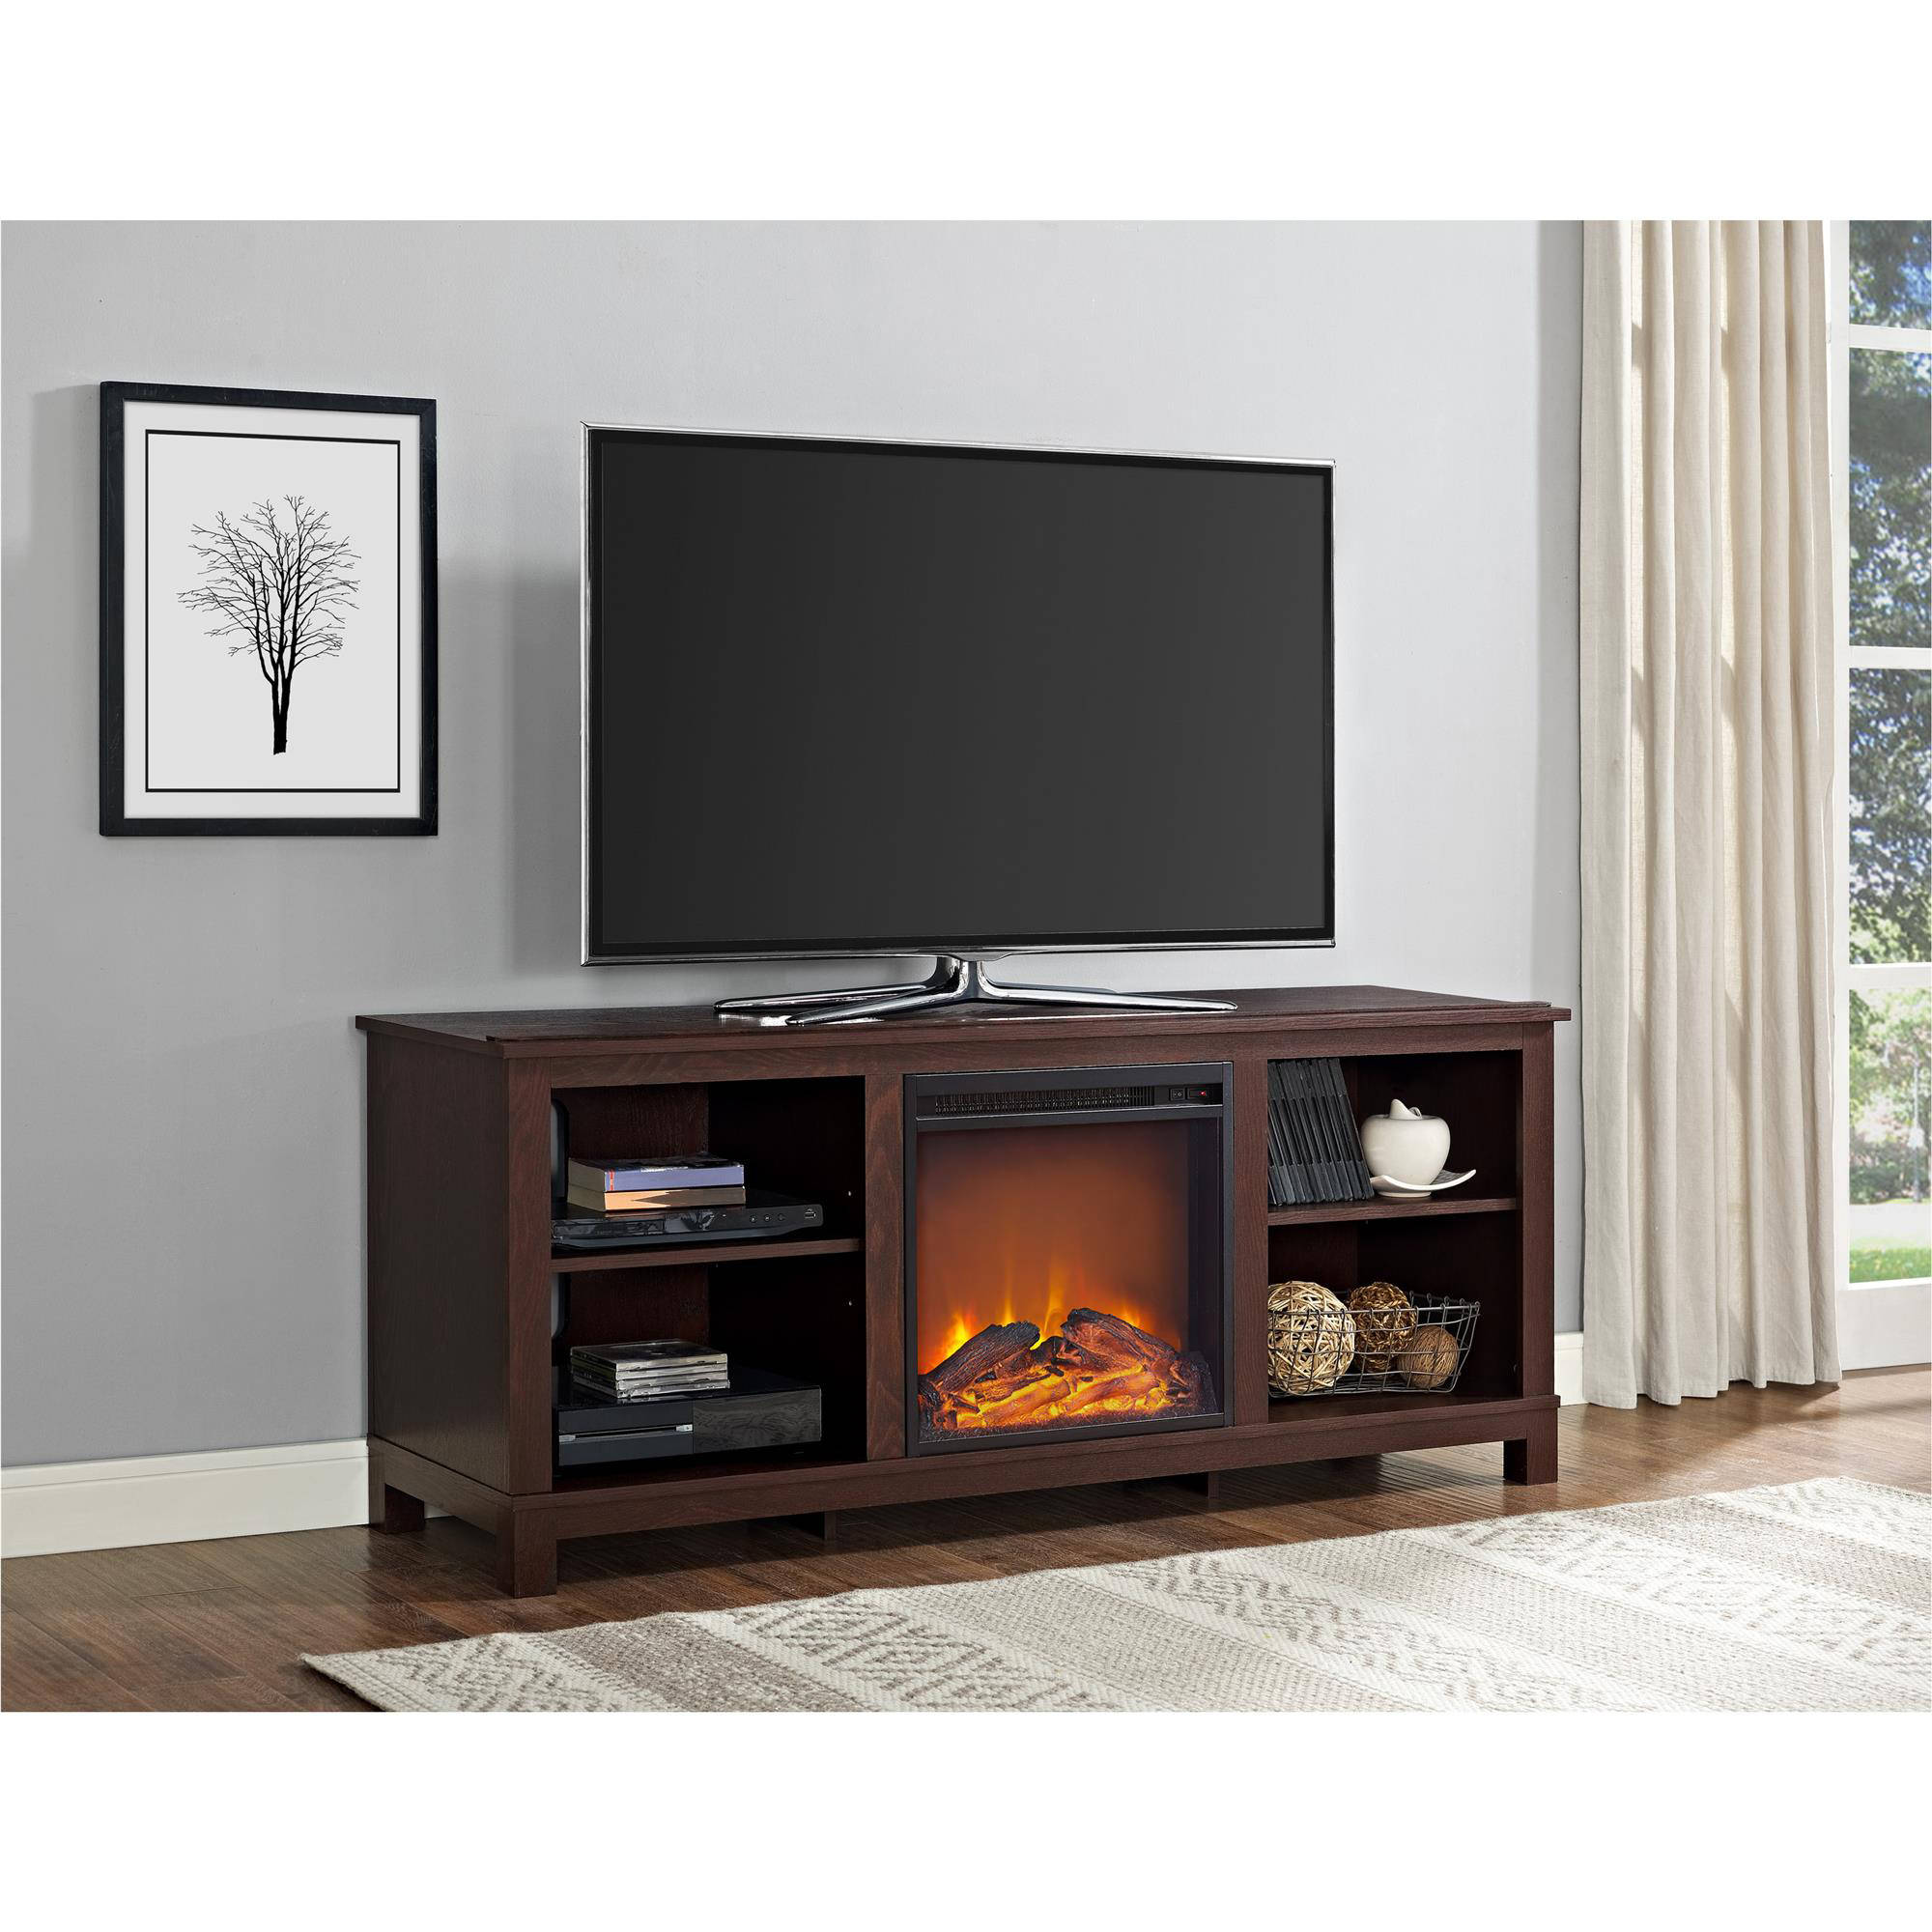 """Altra Edgewood TV Console with Fireplace for TVs up to 60"""", Espresso"""